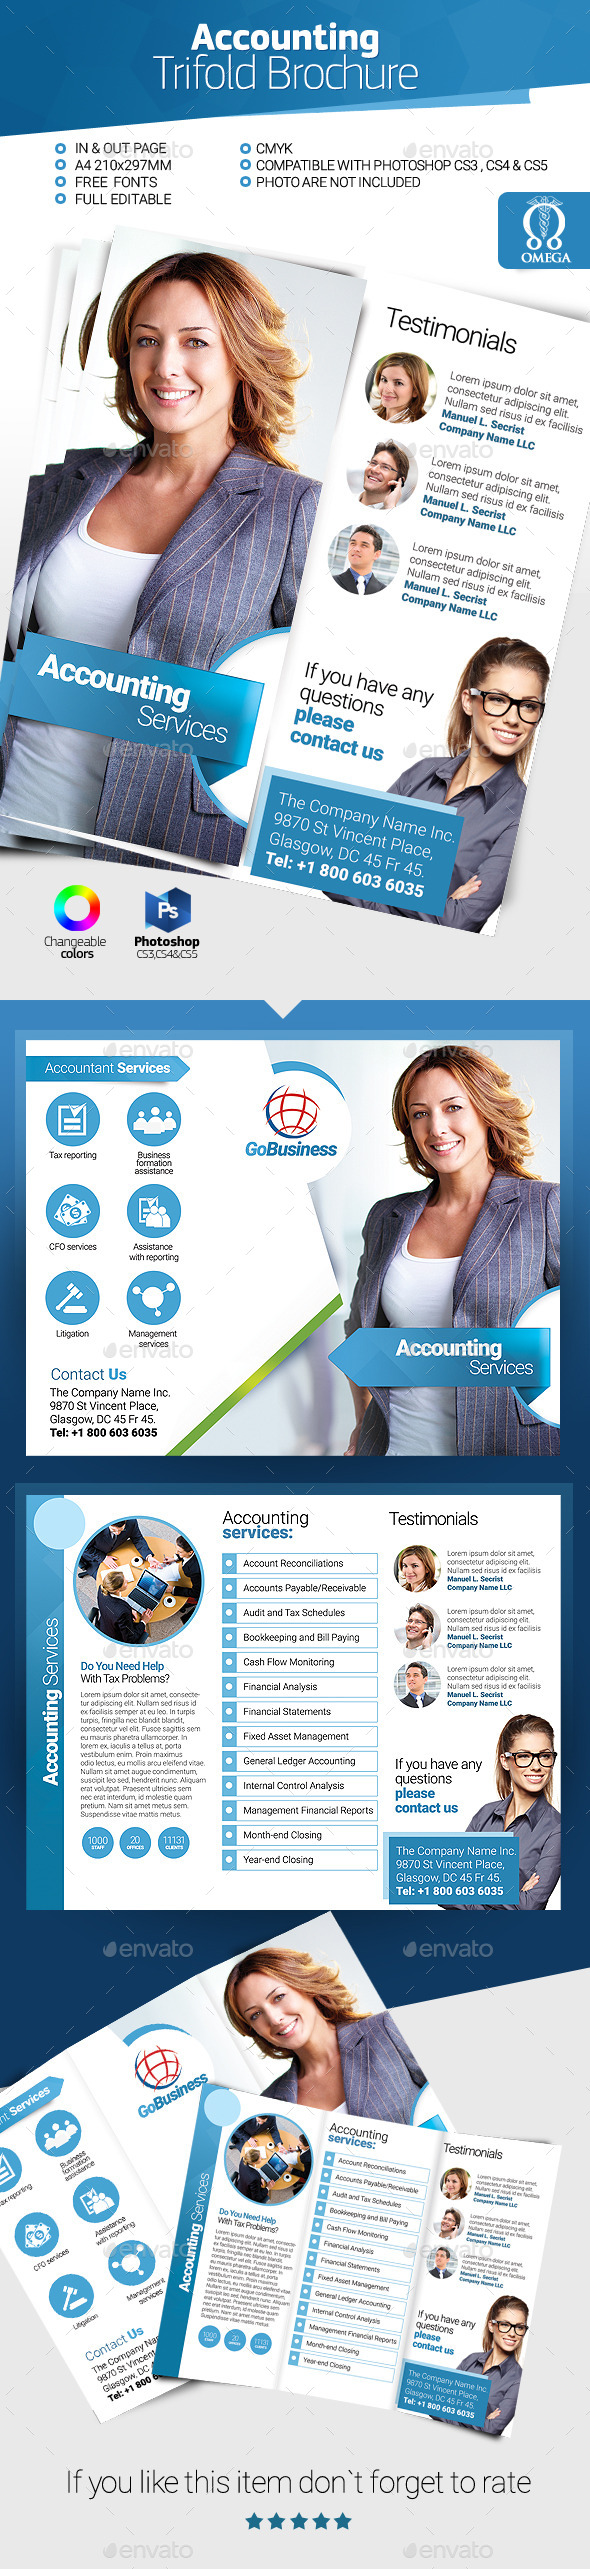 GraphicRiver Accountant Trifold Brochure 11021598